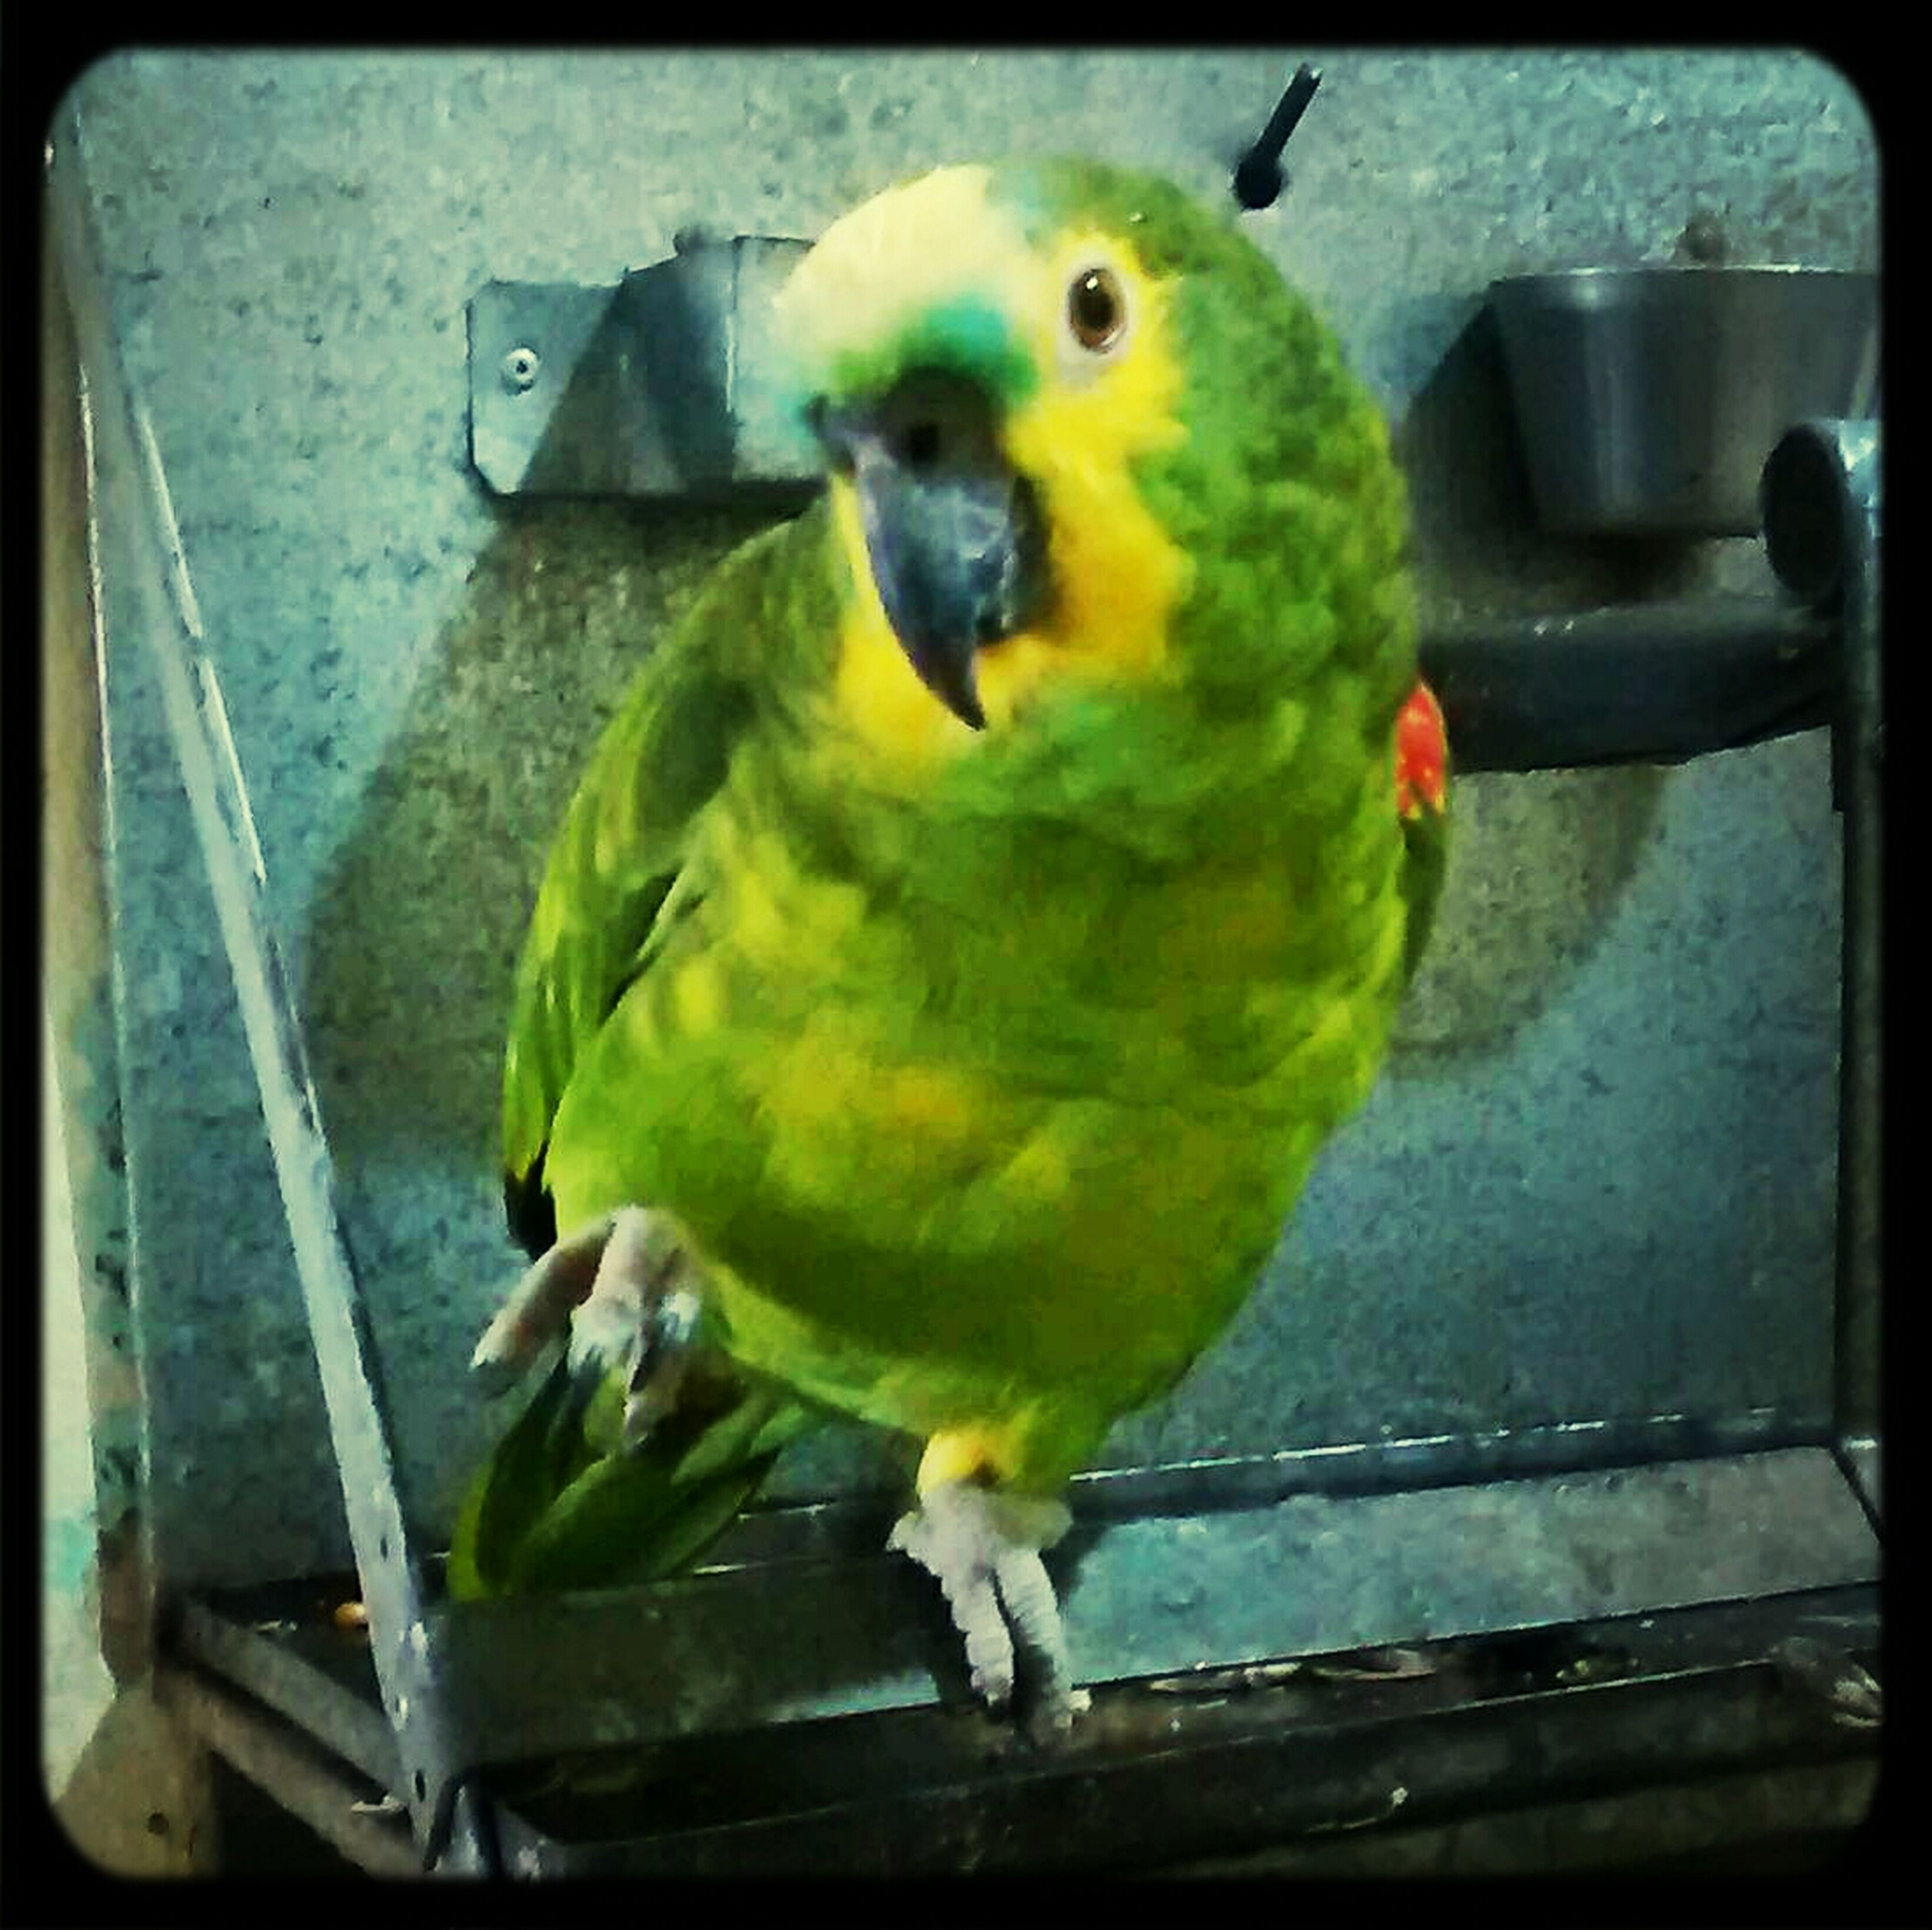 bird, animal themes, one animal, parrot, animals in the wild, wildlife, beak, perching, close-up, transfer print, indoors, auto post production filter, duck, yellow, full length, green color, multi colored, focus on foreground, two animals, day